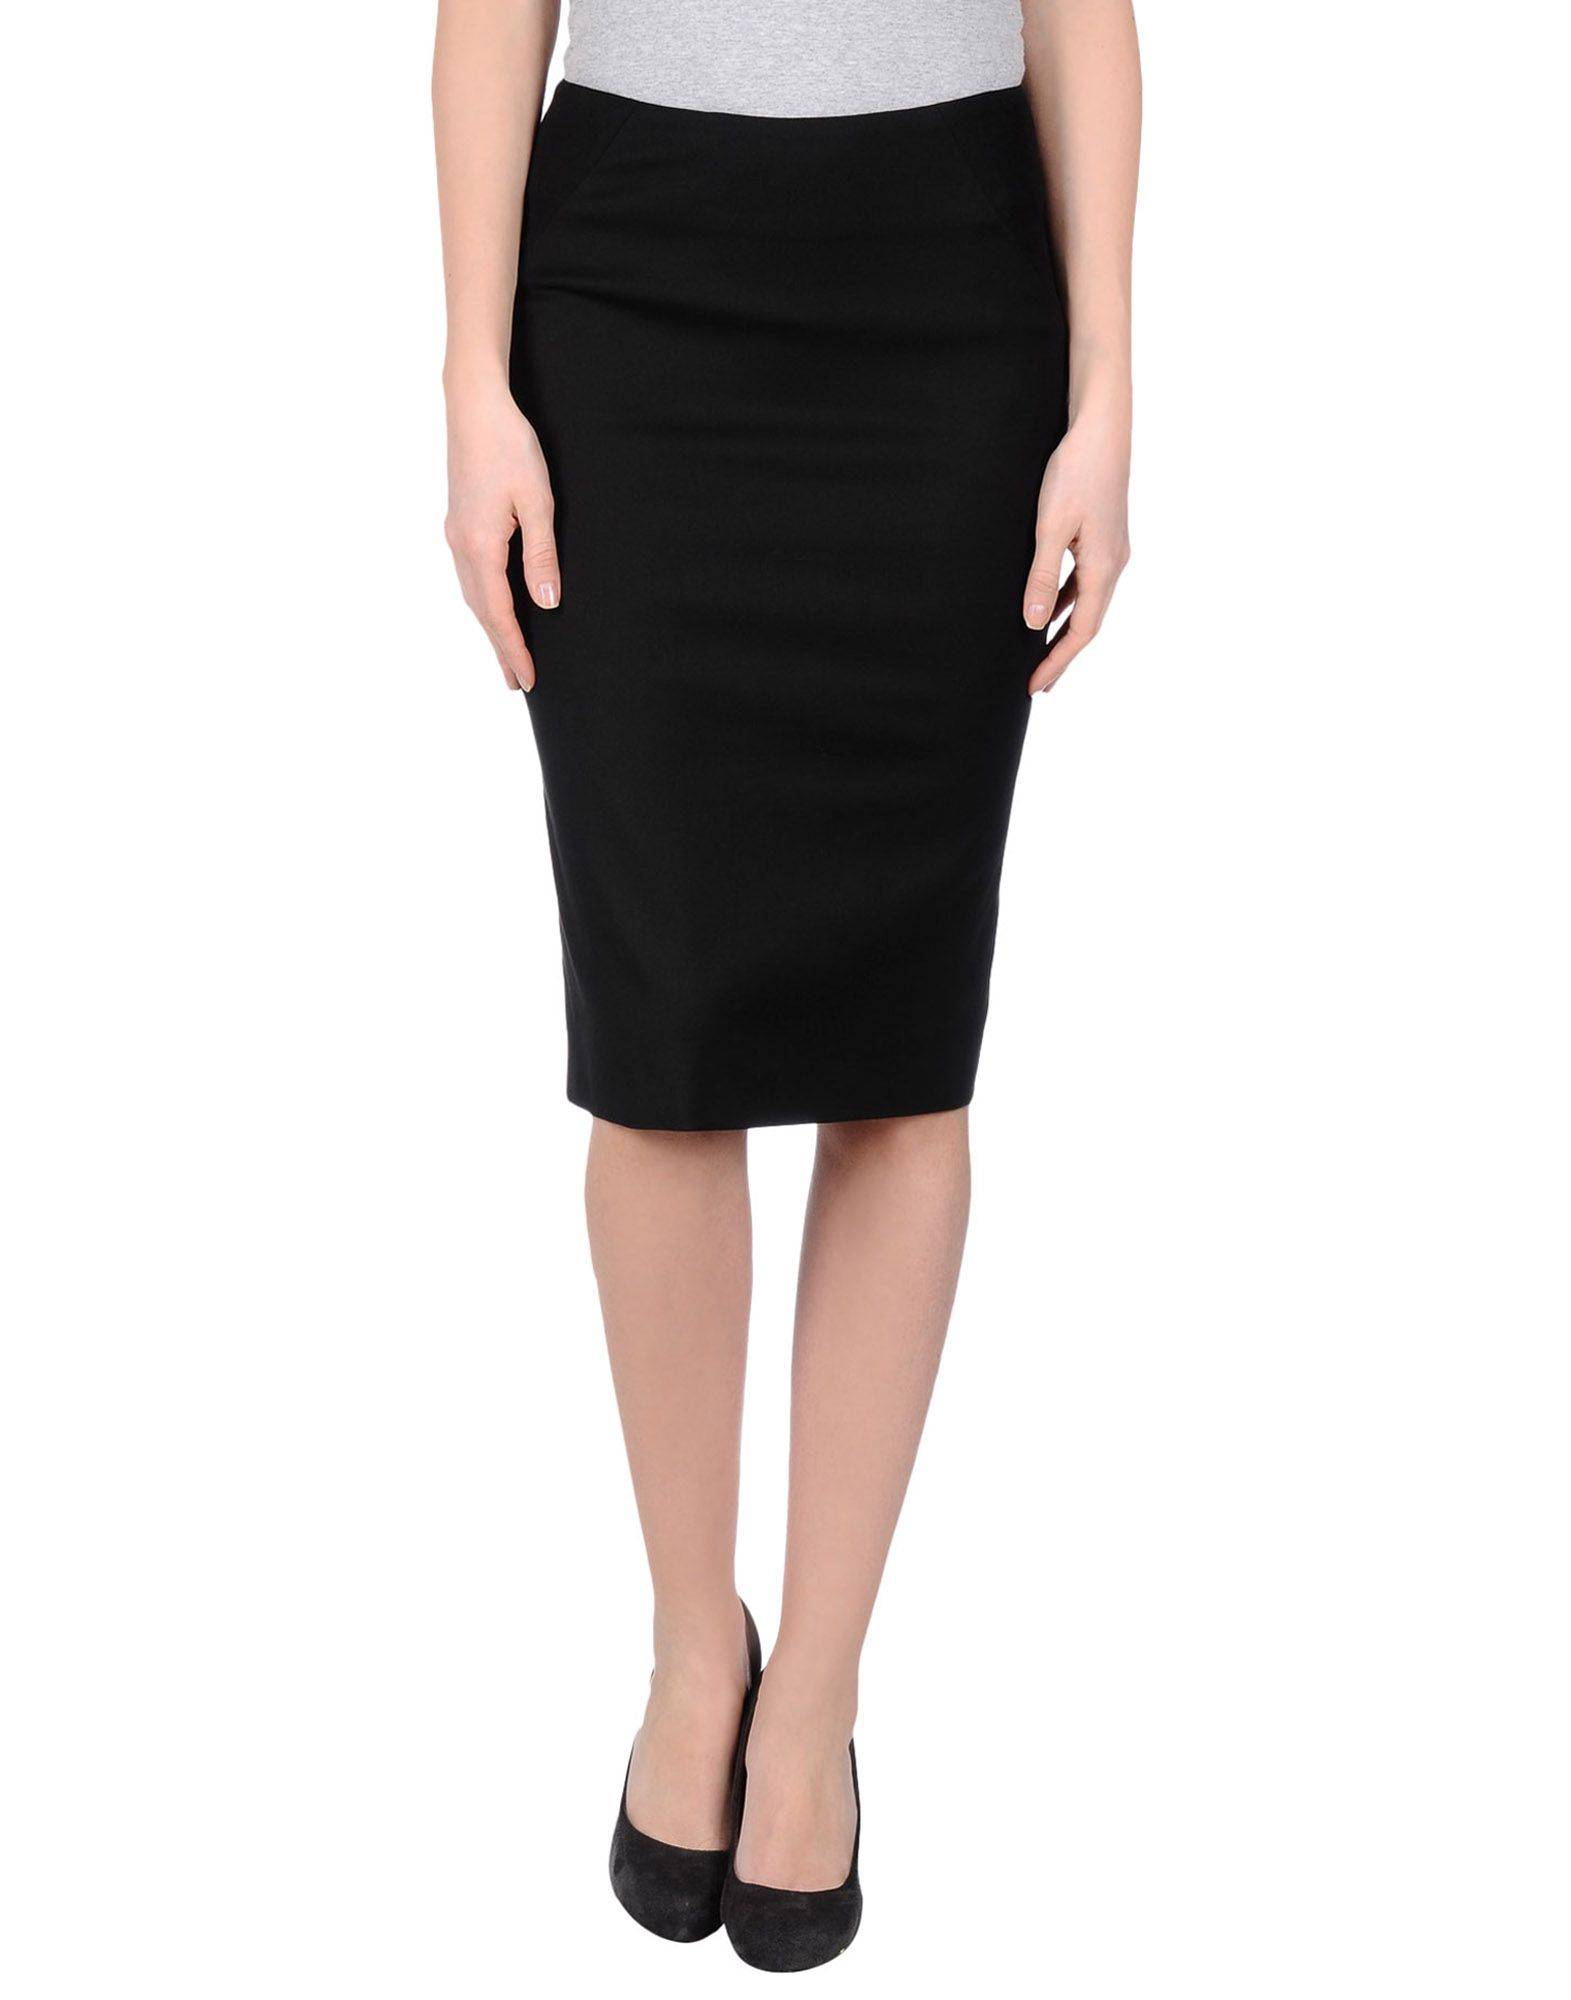 Mid-length Skirts: Free Shipping on orders over $45 at downloadsolutionspa5tr.gq - Your Online Skirts Store! Get 5% in rewards with Club O! skip to main content. Registries Gift Cards. Cupcakes and Cashmere Womens Derry Pencil Skirt Crochet Knee-Length. SALE. Quick View. Sale $ 19 - $